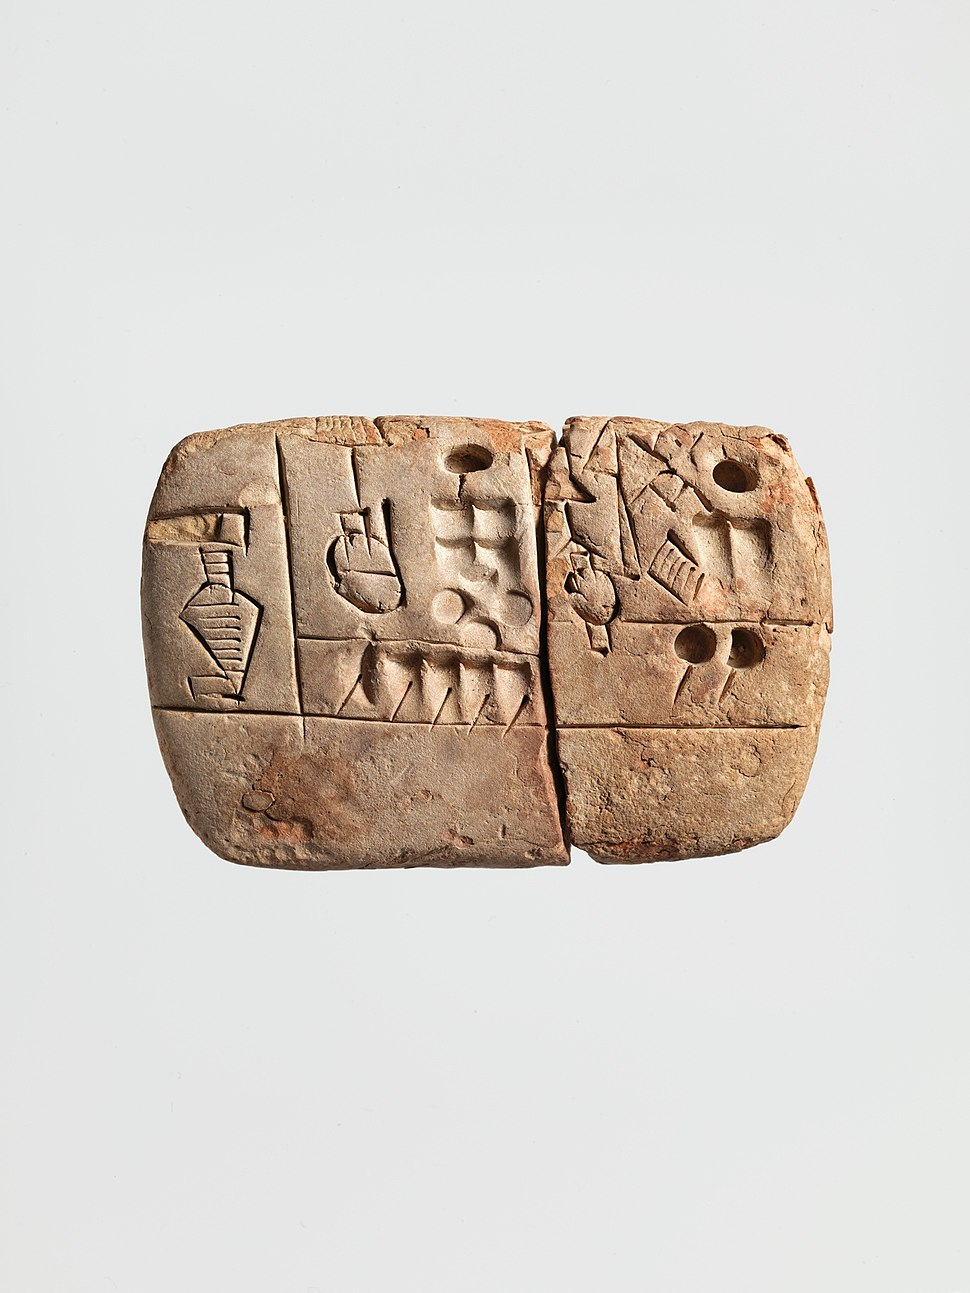 Cuneiform tablet- administrative account with entries concerning malt and barley groats MET DP293245